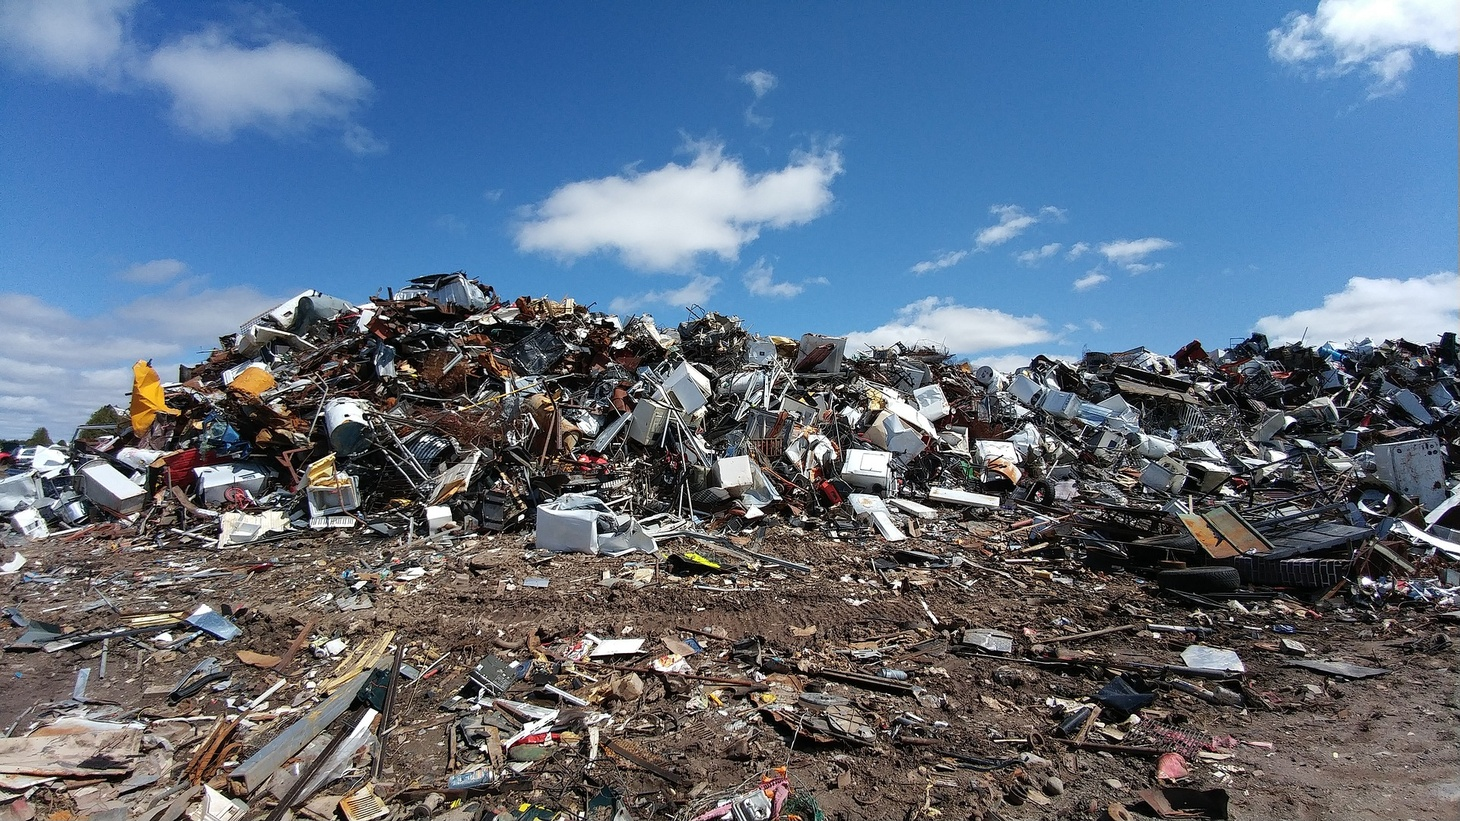 U.S. landfills are expected to fill up in 15 years, according to Waste Business Journal.